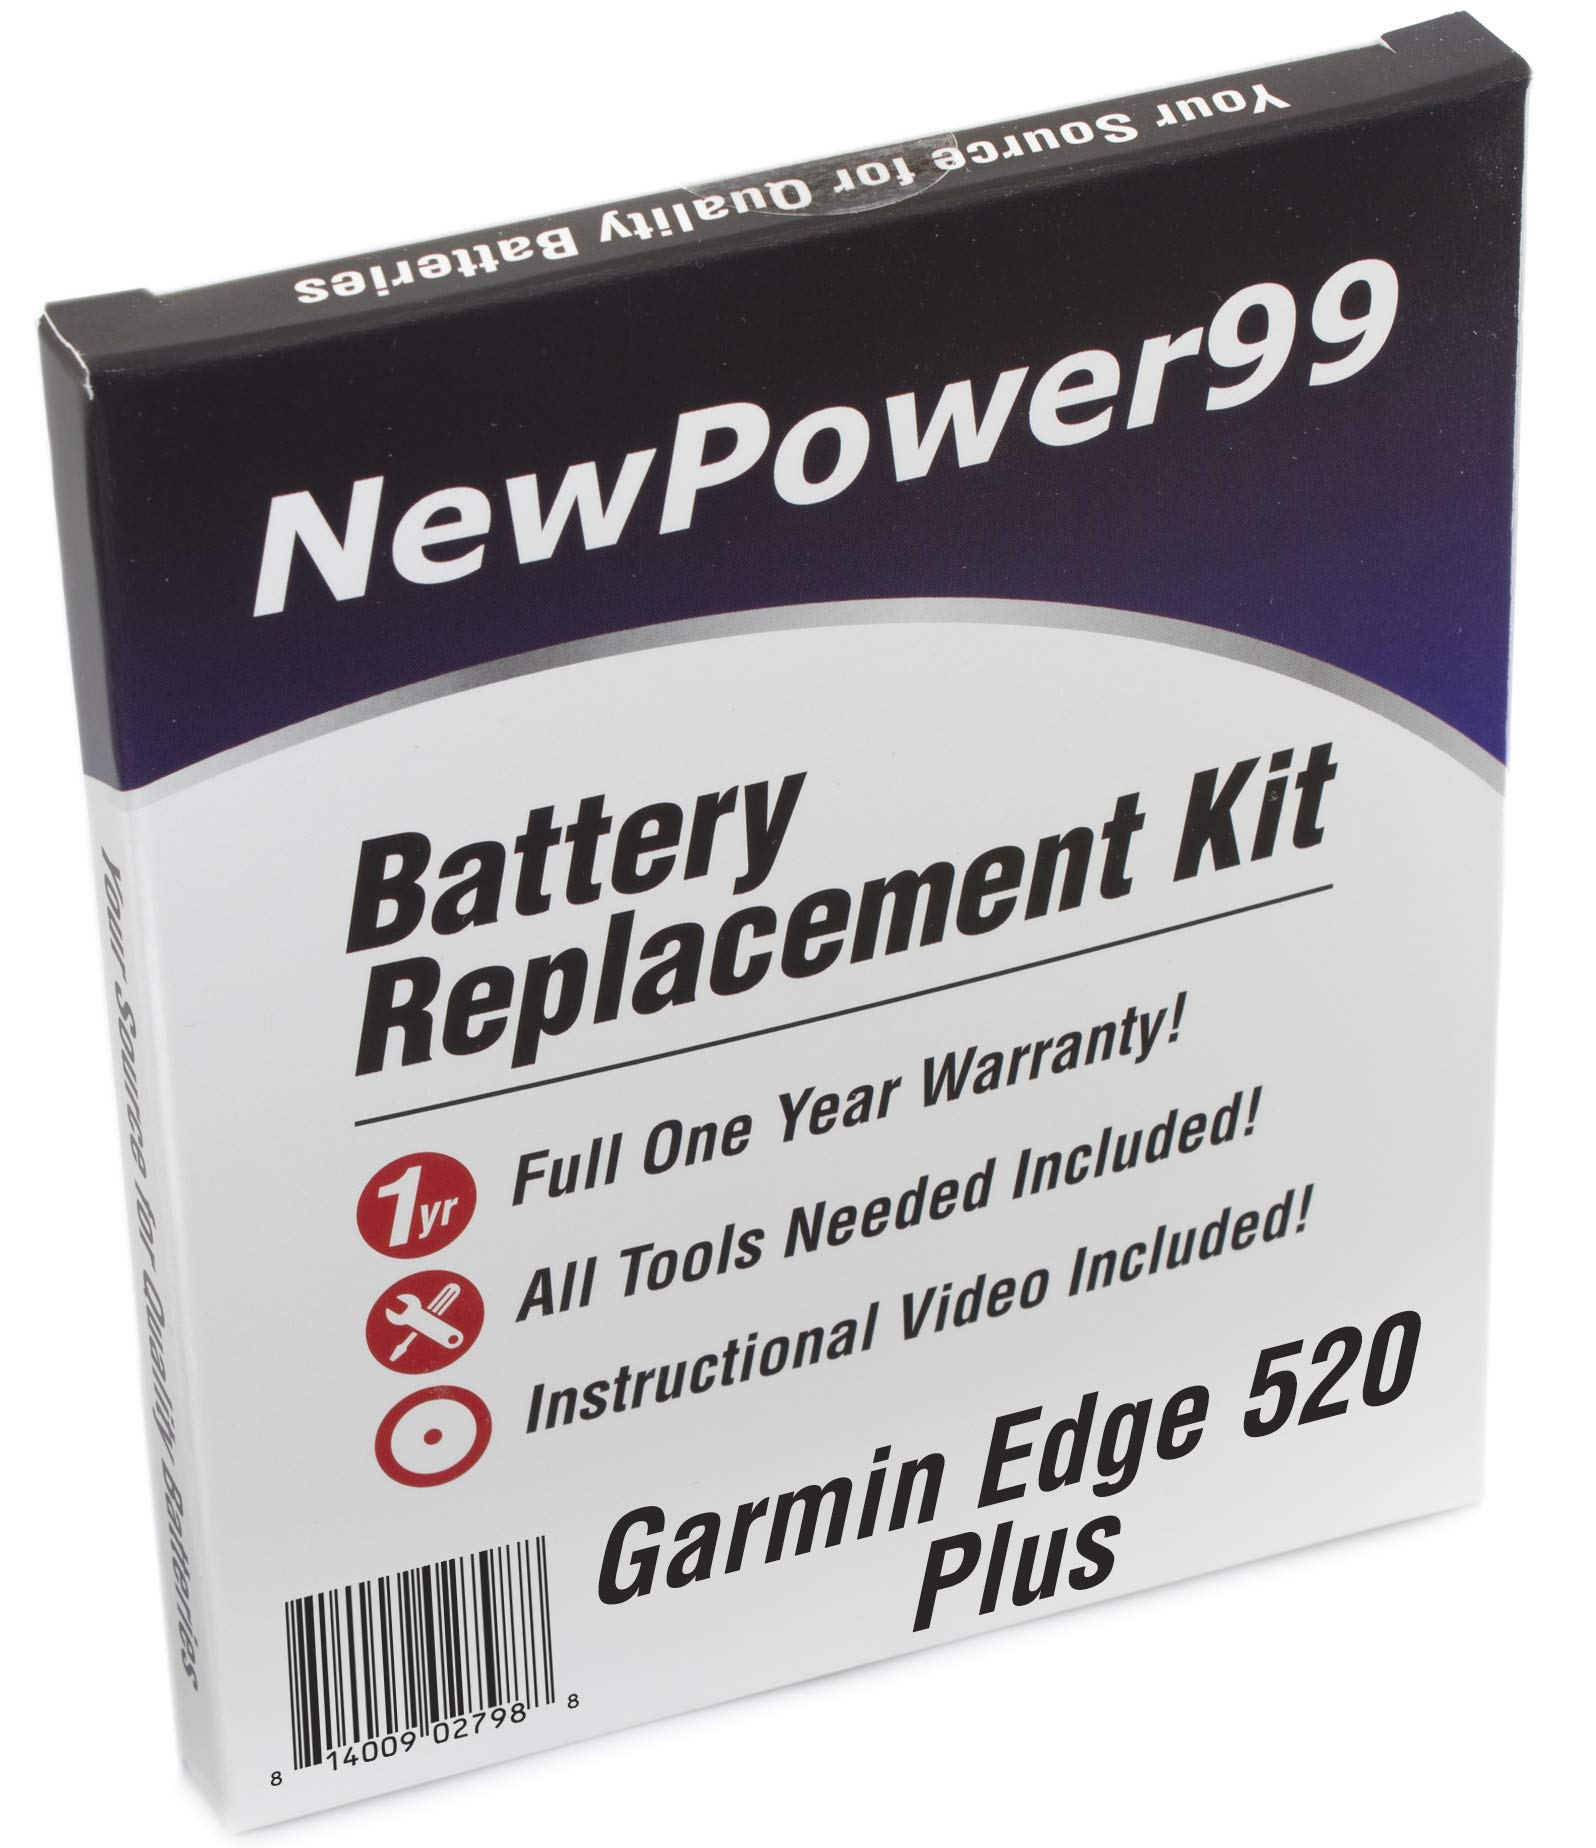 NewPower99 Battery Replacement Kit for Garmin Edge 520 Plus with Installation Video, Tools, and Extended Life Battery by NewPower99